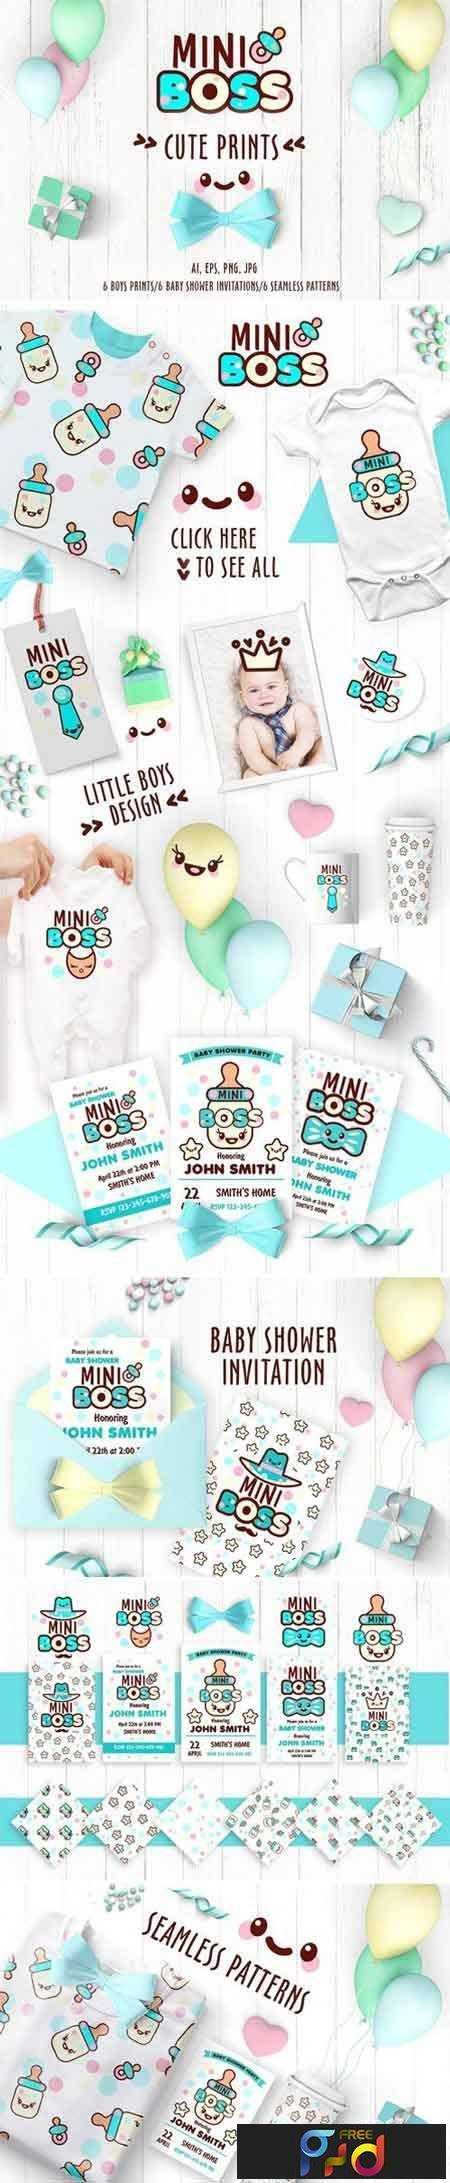 1805090 Collection of cute prints for boys 2258151 1